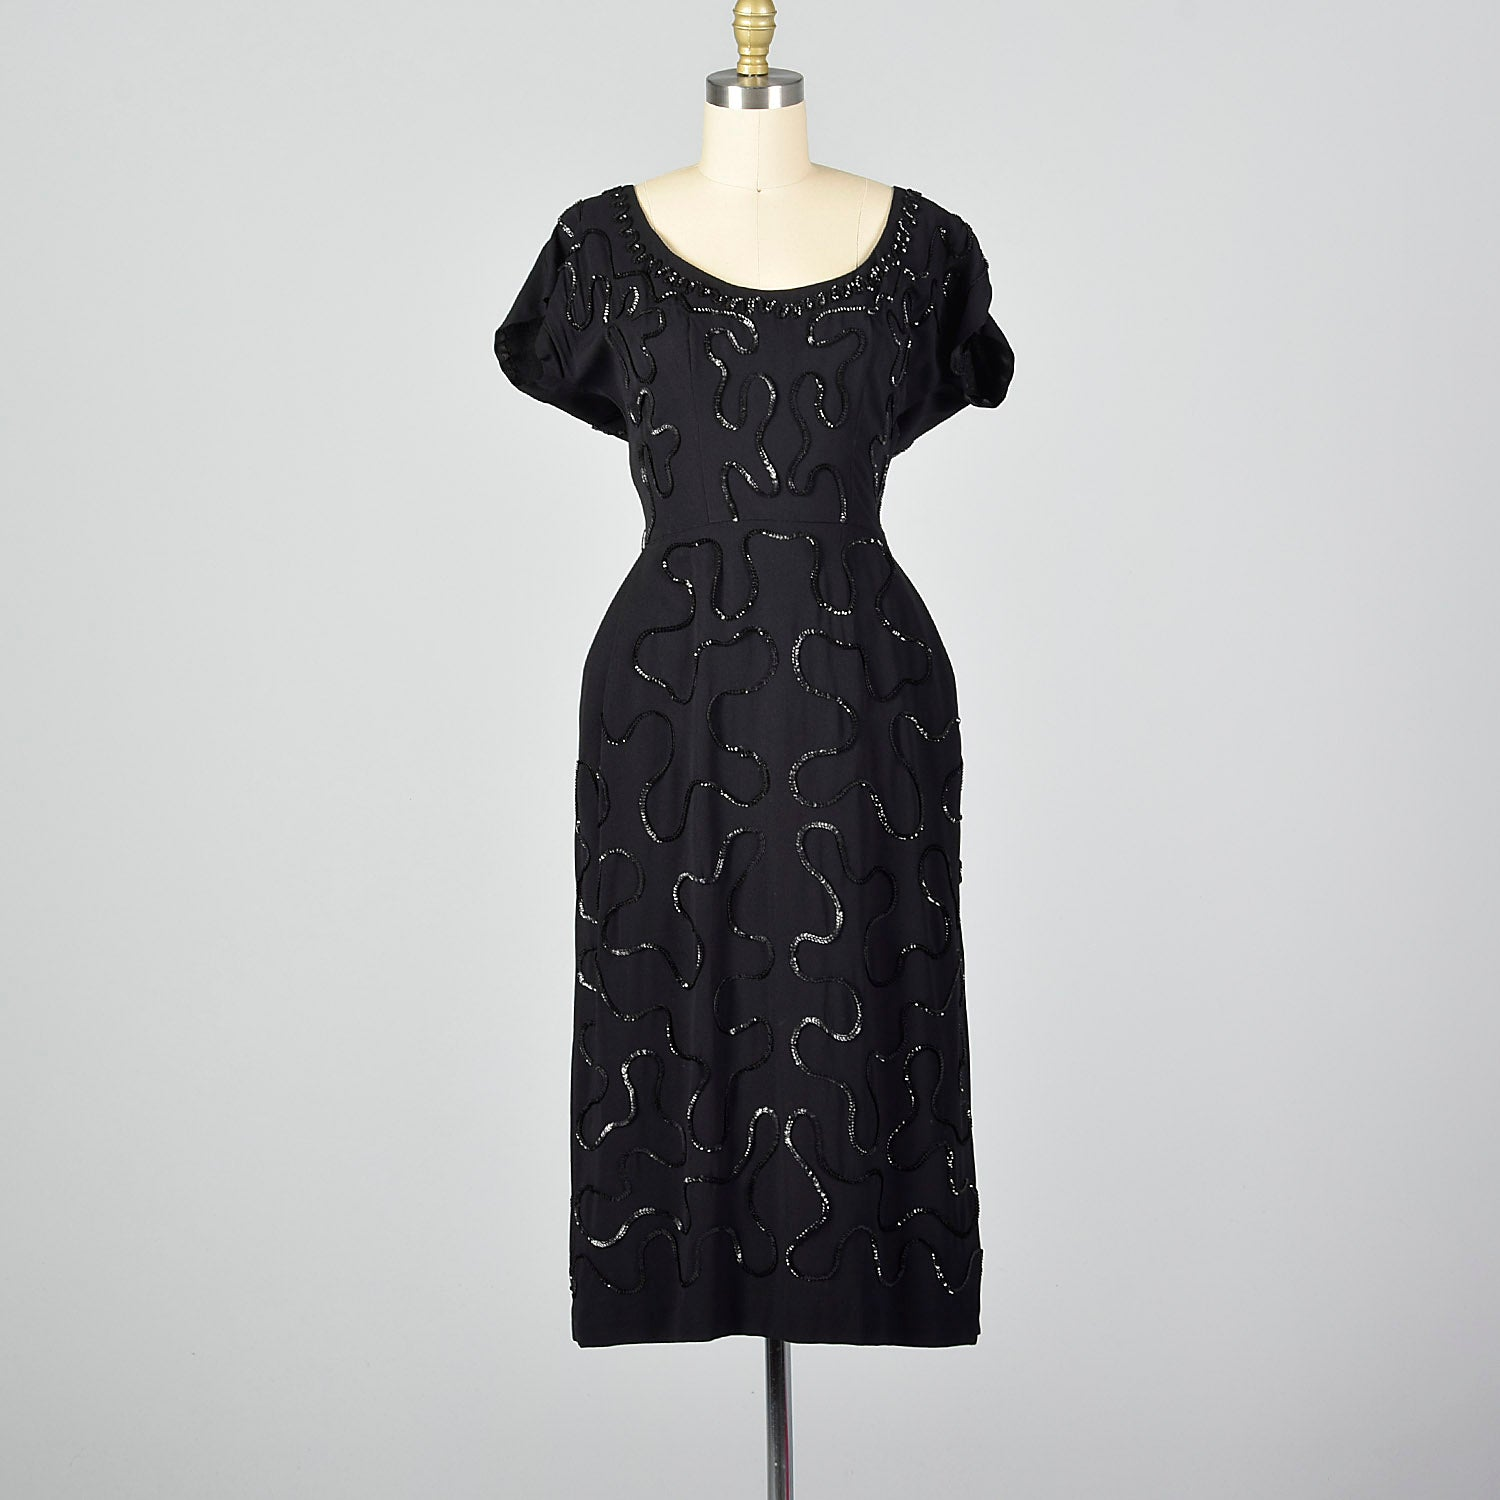 Medium 1950s Sequined Little Black Dress